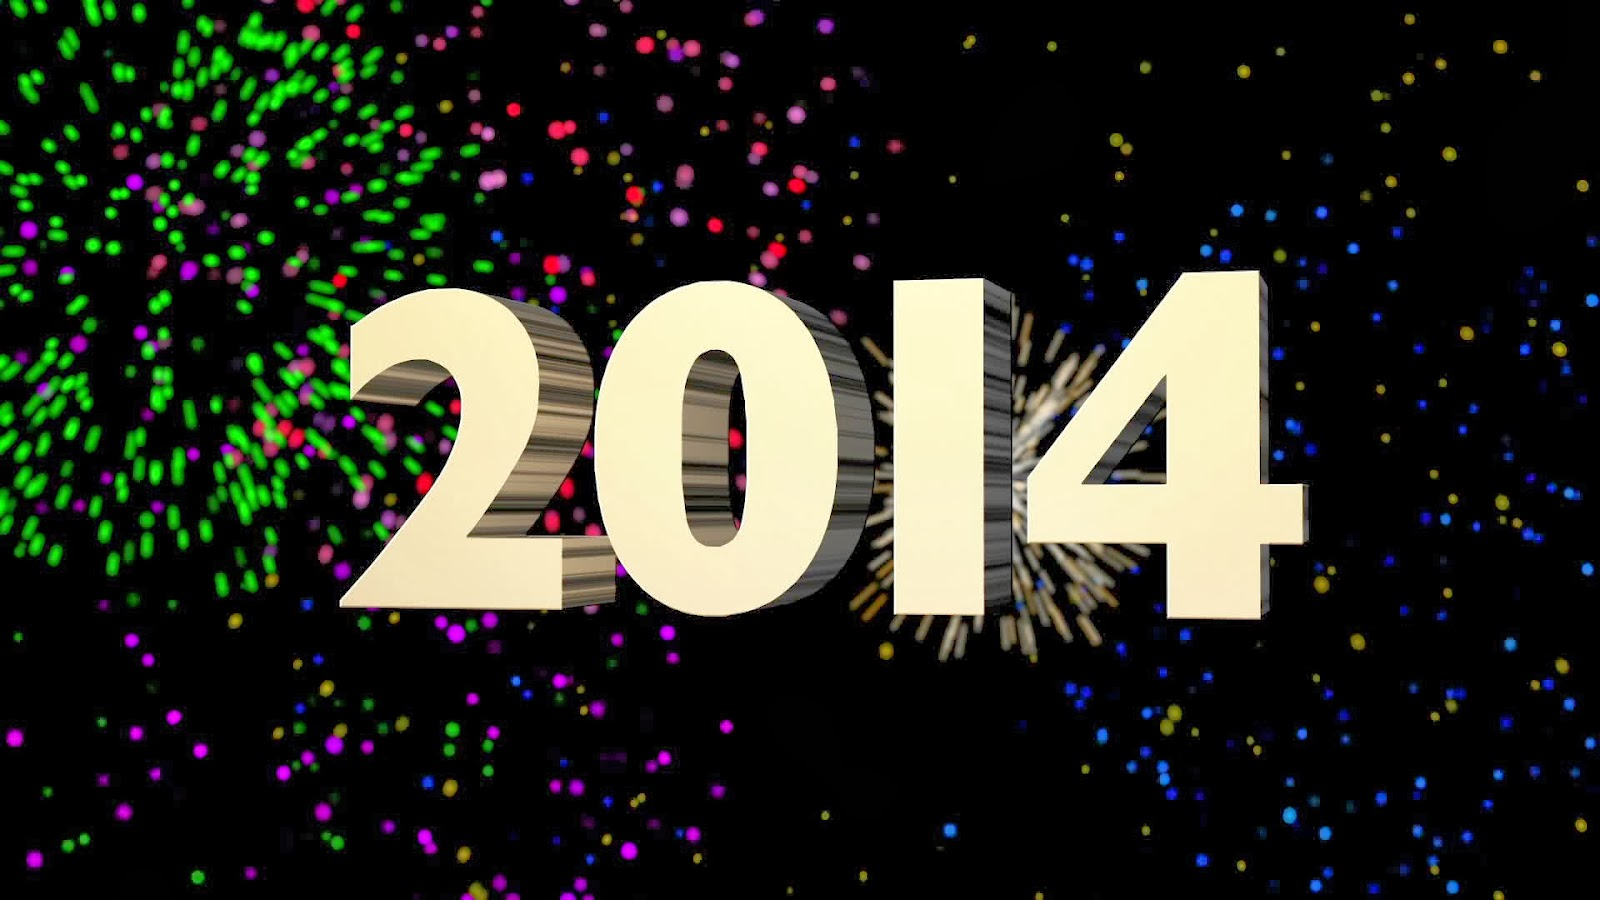 2014 wallpapers hd wallpapers happy new year 2014 wallpaper hd free voltagebd Images